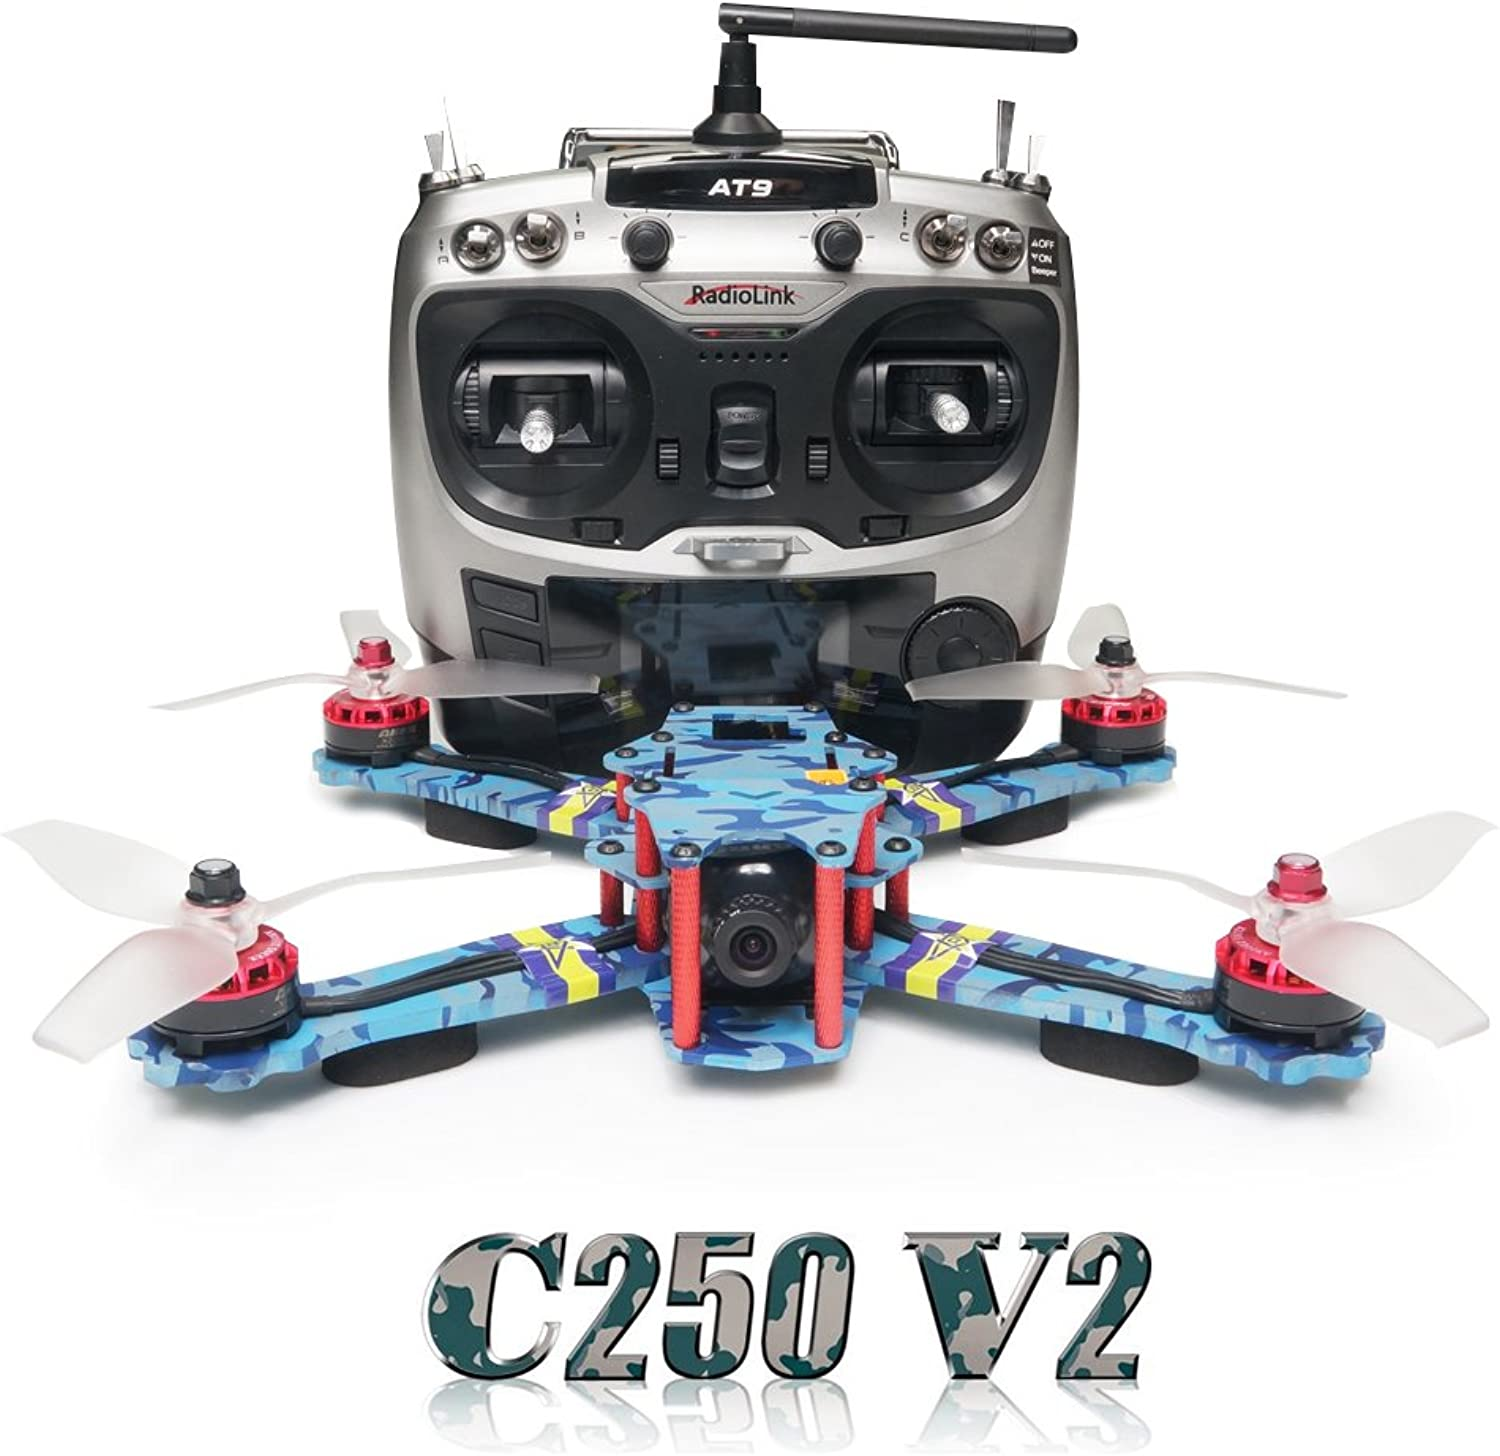 ARRIS C250 V2 250mm RC Quadcopter FPV Racing Drone RTF w Flycolor 4in1 STower + Radiolink AT9 + 4S Battery + HD Camera